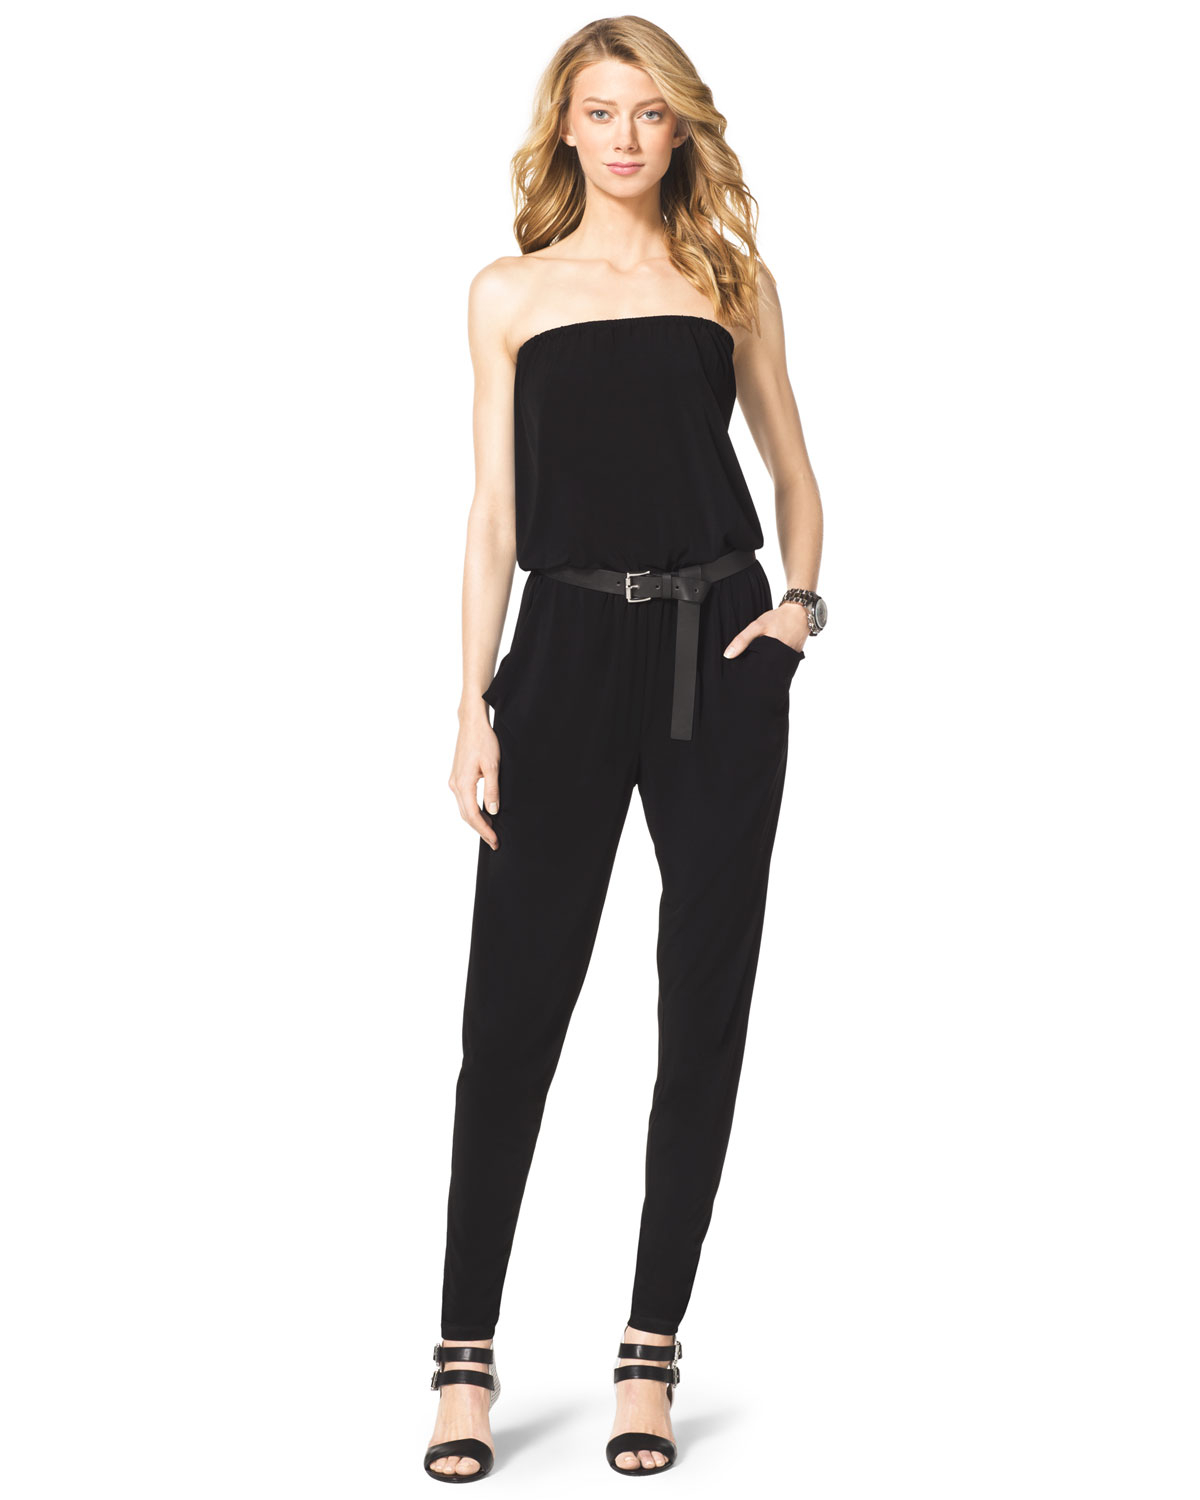 michael kors michael strapless jersey jumpsuit in silver black silver lyst. Black Bedroom Furniture Sets. Home Design Ideas